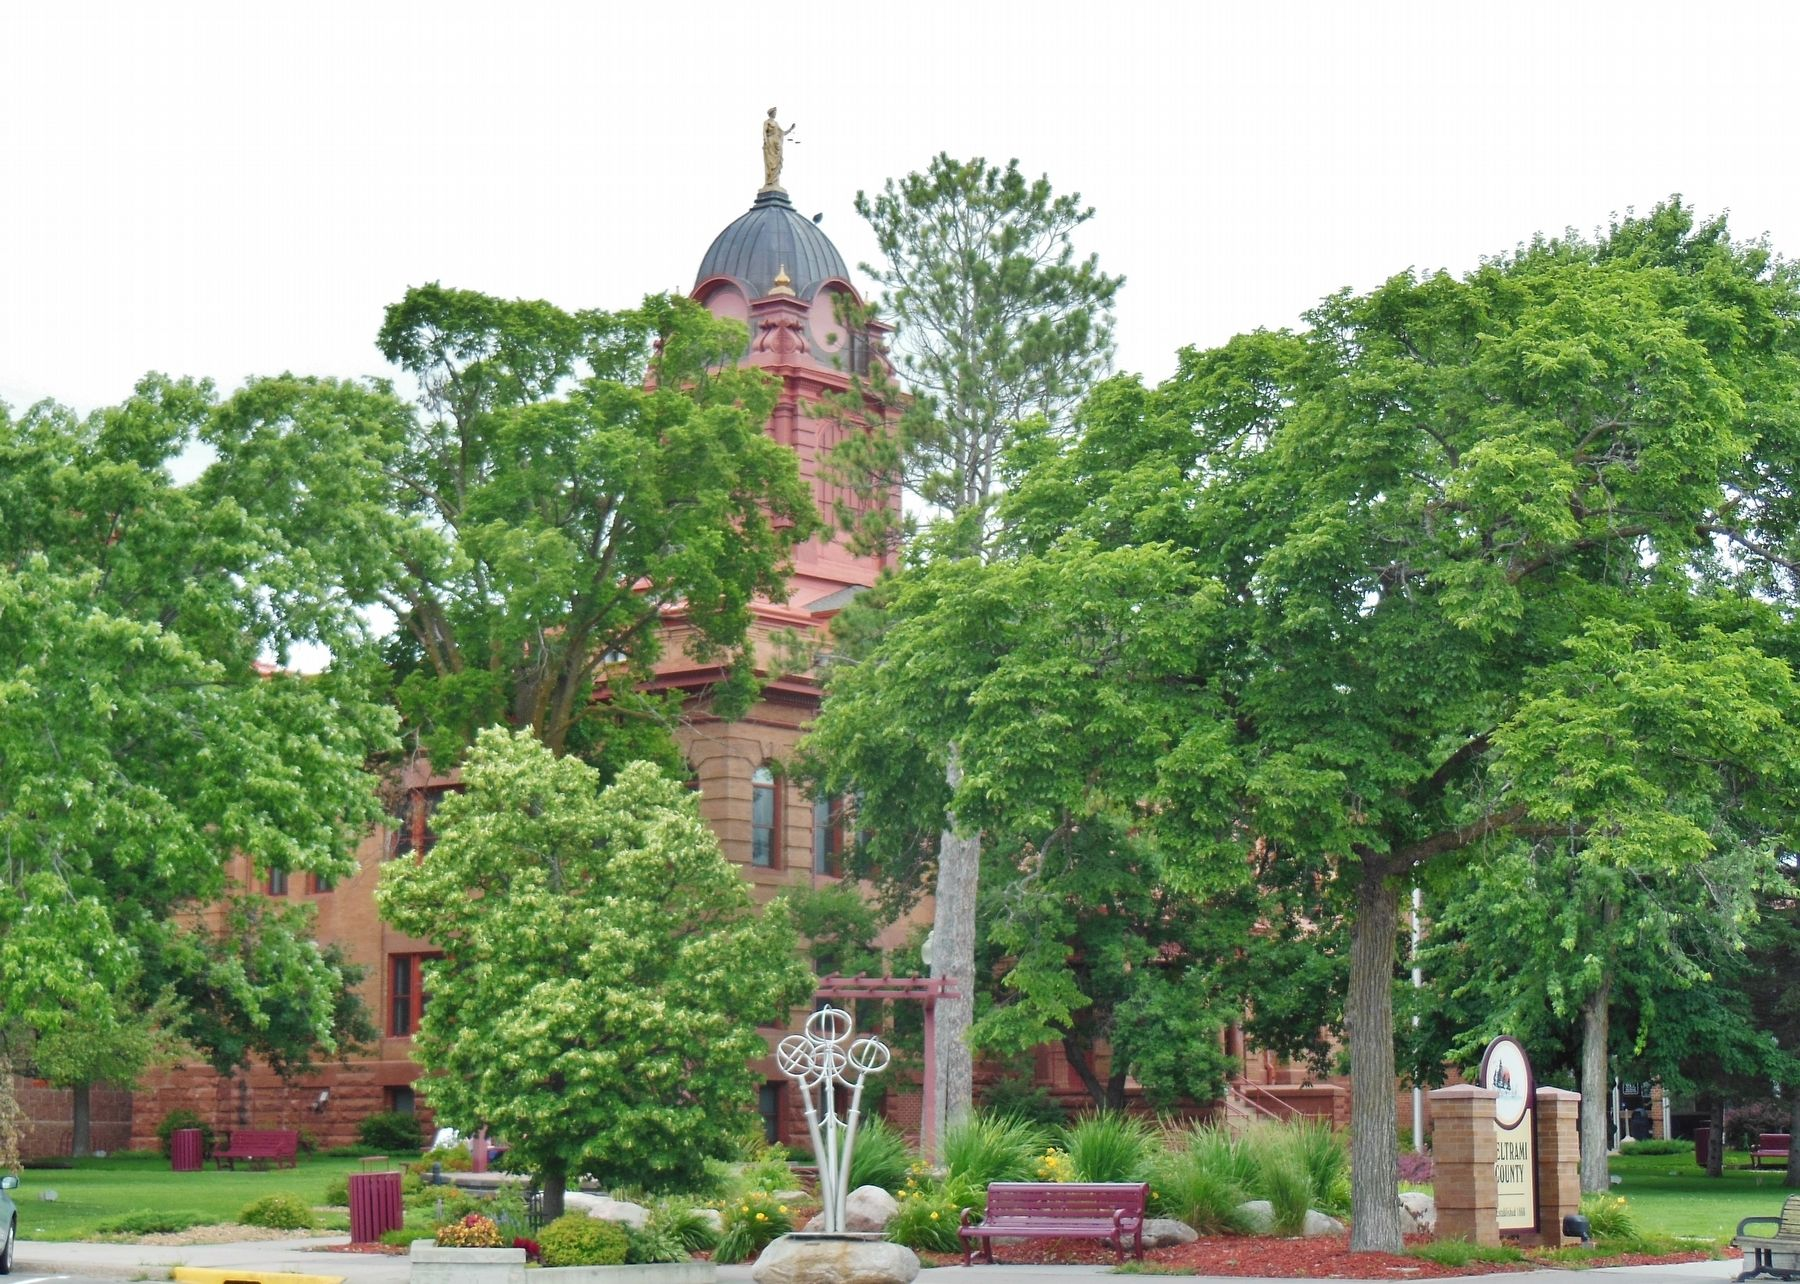 Beltrami County Courthouse (<i>southeast corner view; marker visible at bottom right</i>) image. Click for full size.